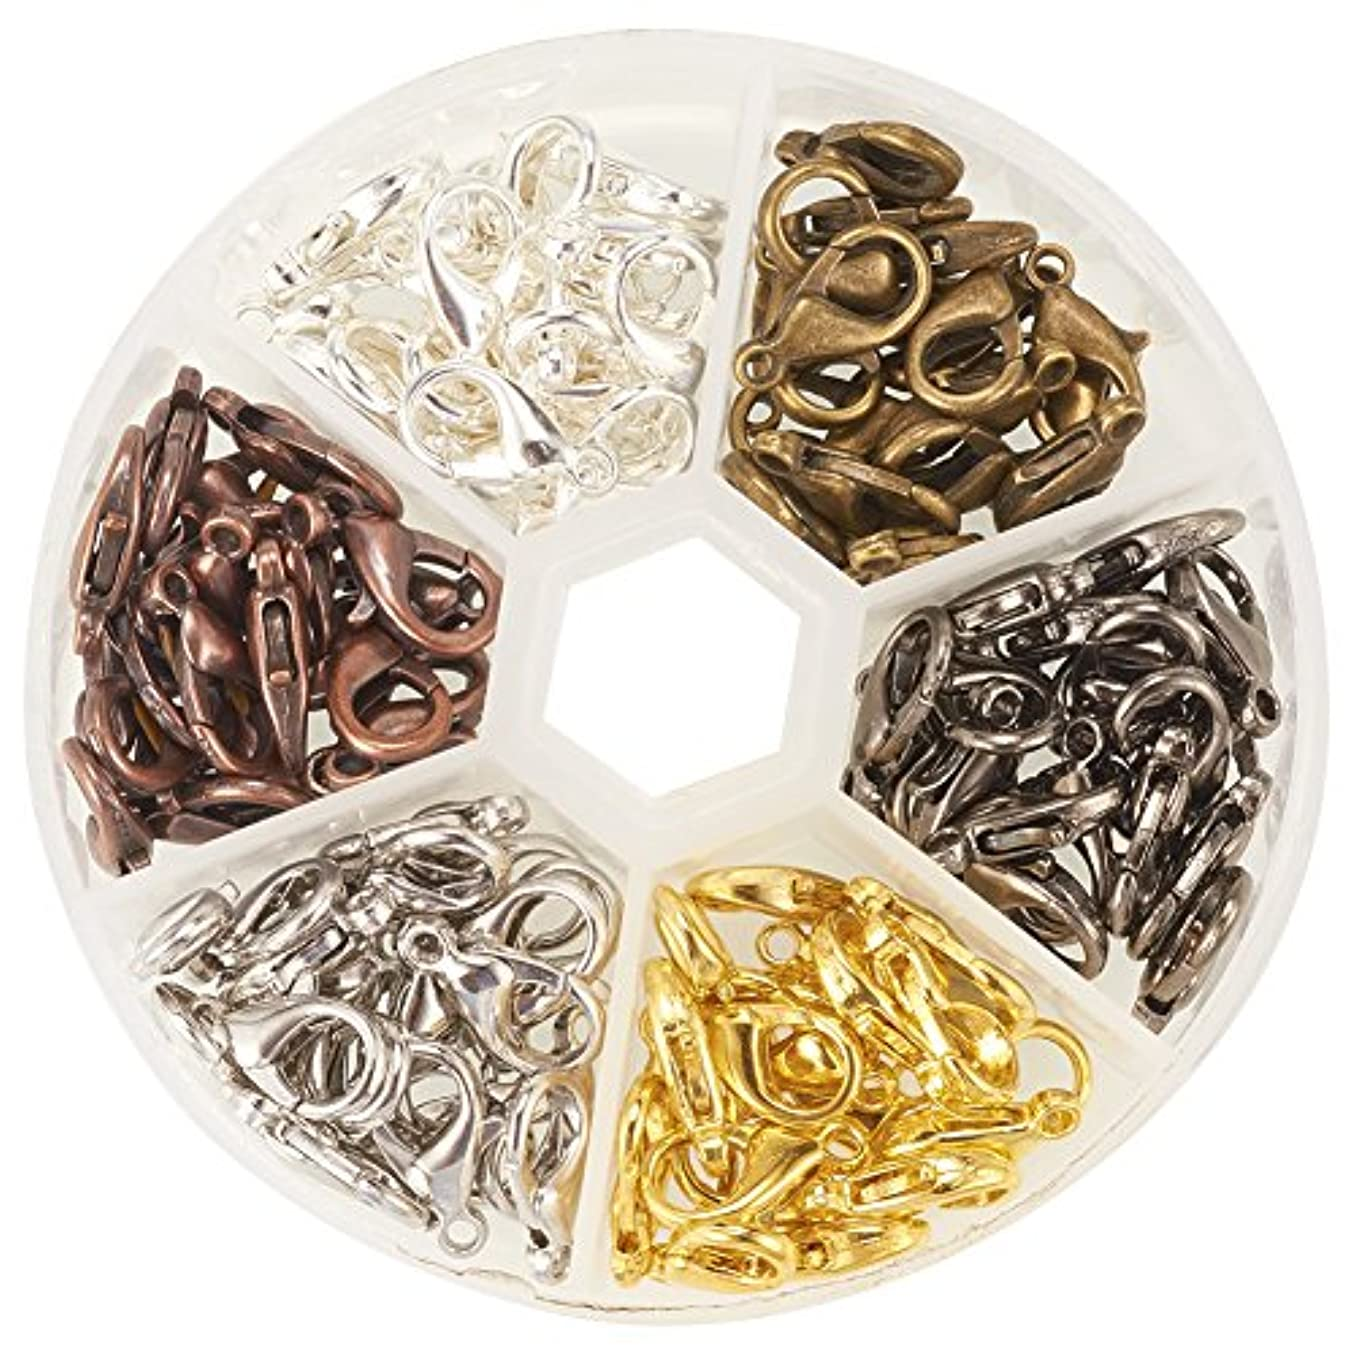 Pandahall Elite Zinc Alloy Plated Lobster Clasp Findings Making For Jewelry in 6 Colors 120Pcs